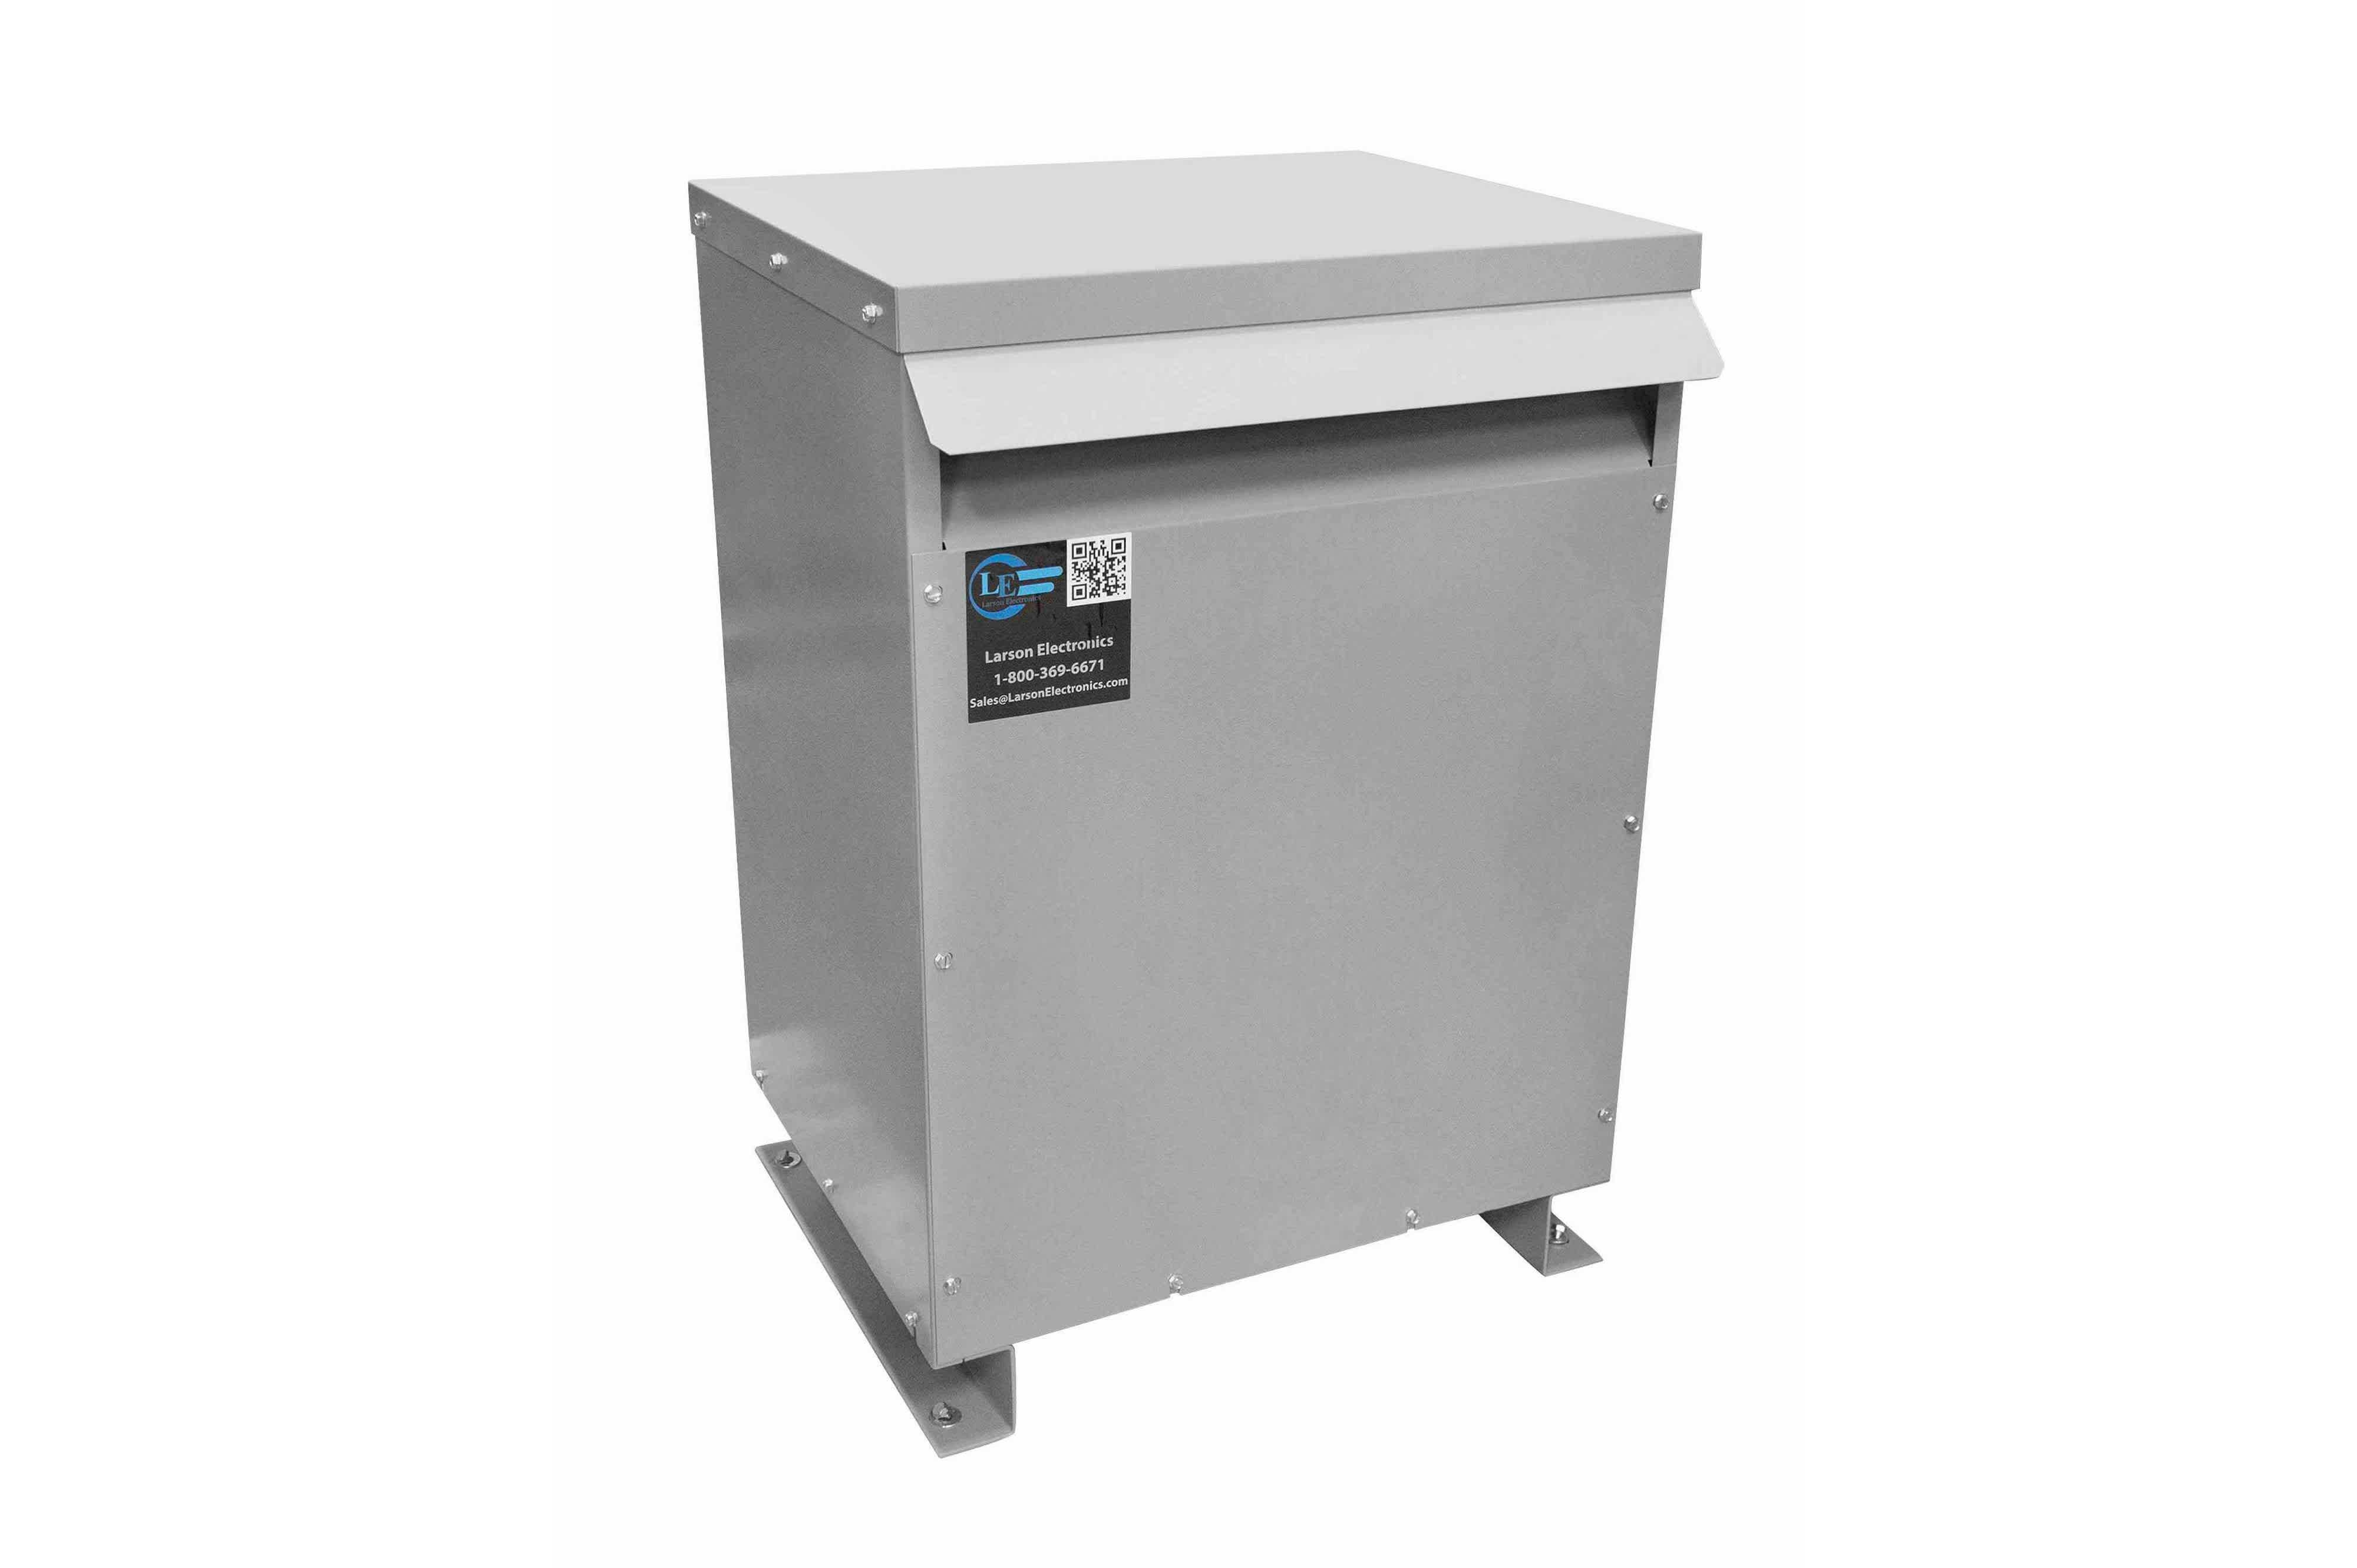 750 kVA 3PH Isolation Transformer, 240V Wye Primary, 600Y/347 Wye-N Secondary, N3R, Ventilated, 60 Hz